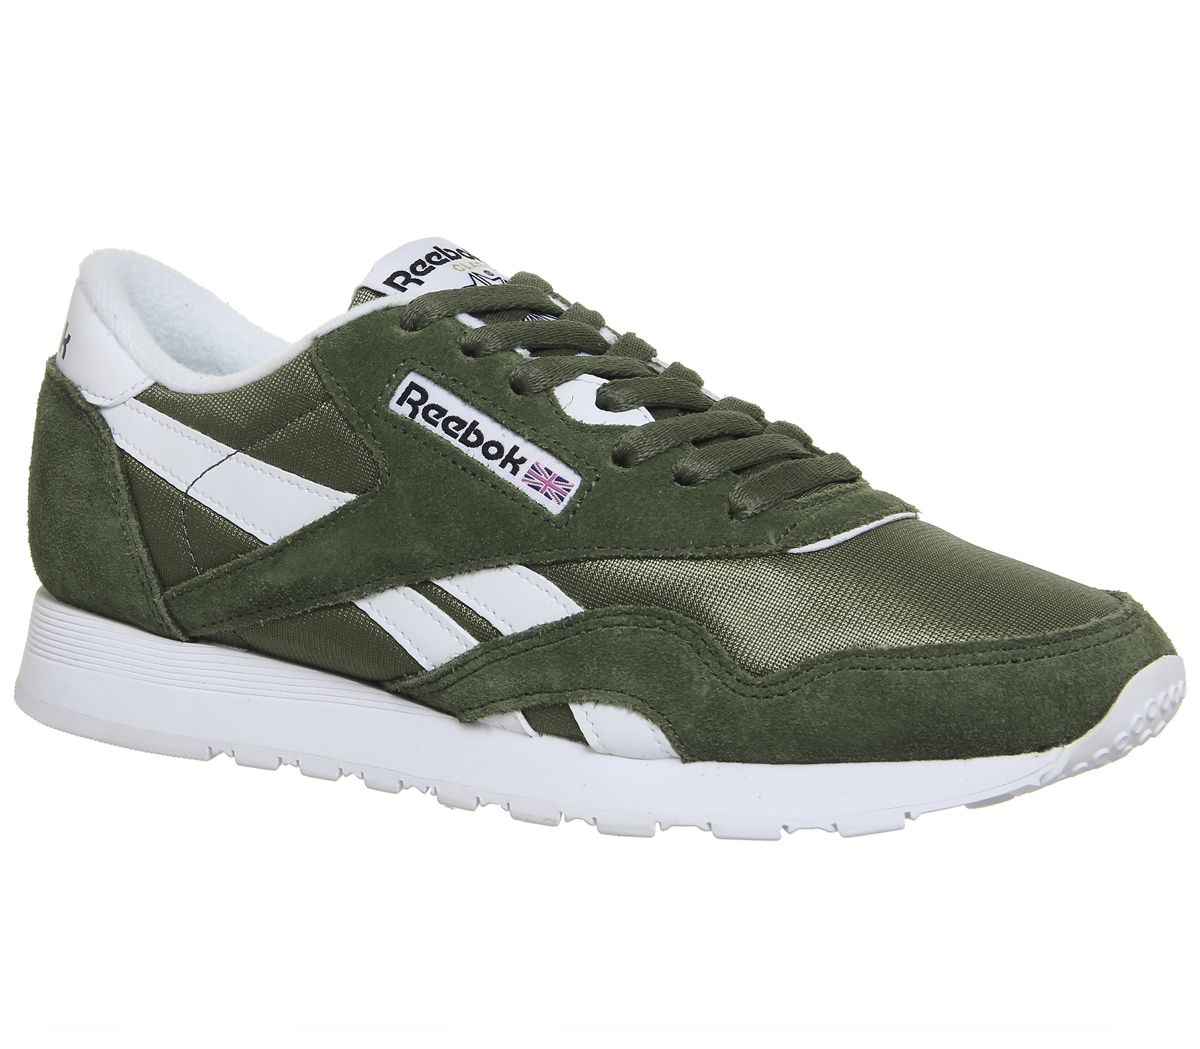 5f6bf0d0a65db Reebok Cl Nylon Trainers Hunter Green White - Unisex Sports